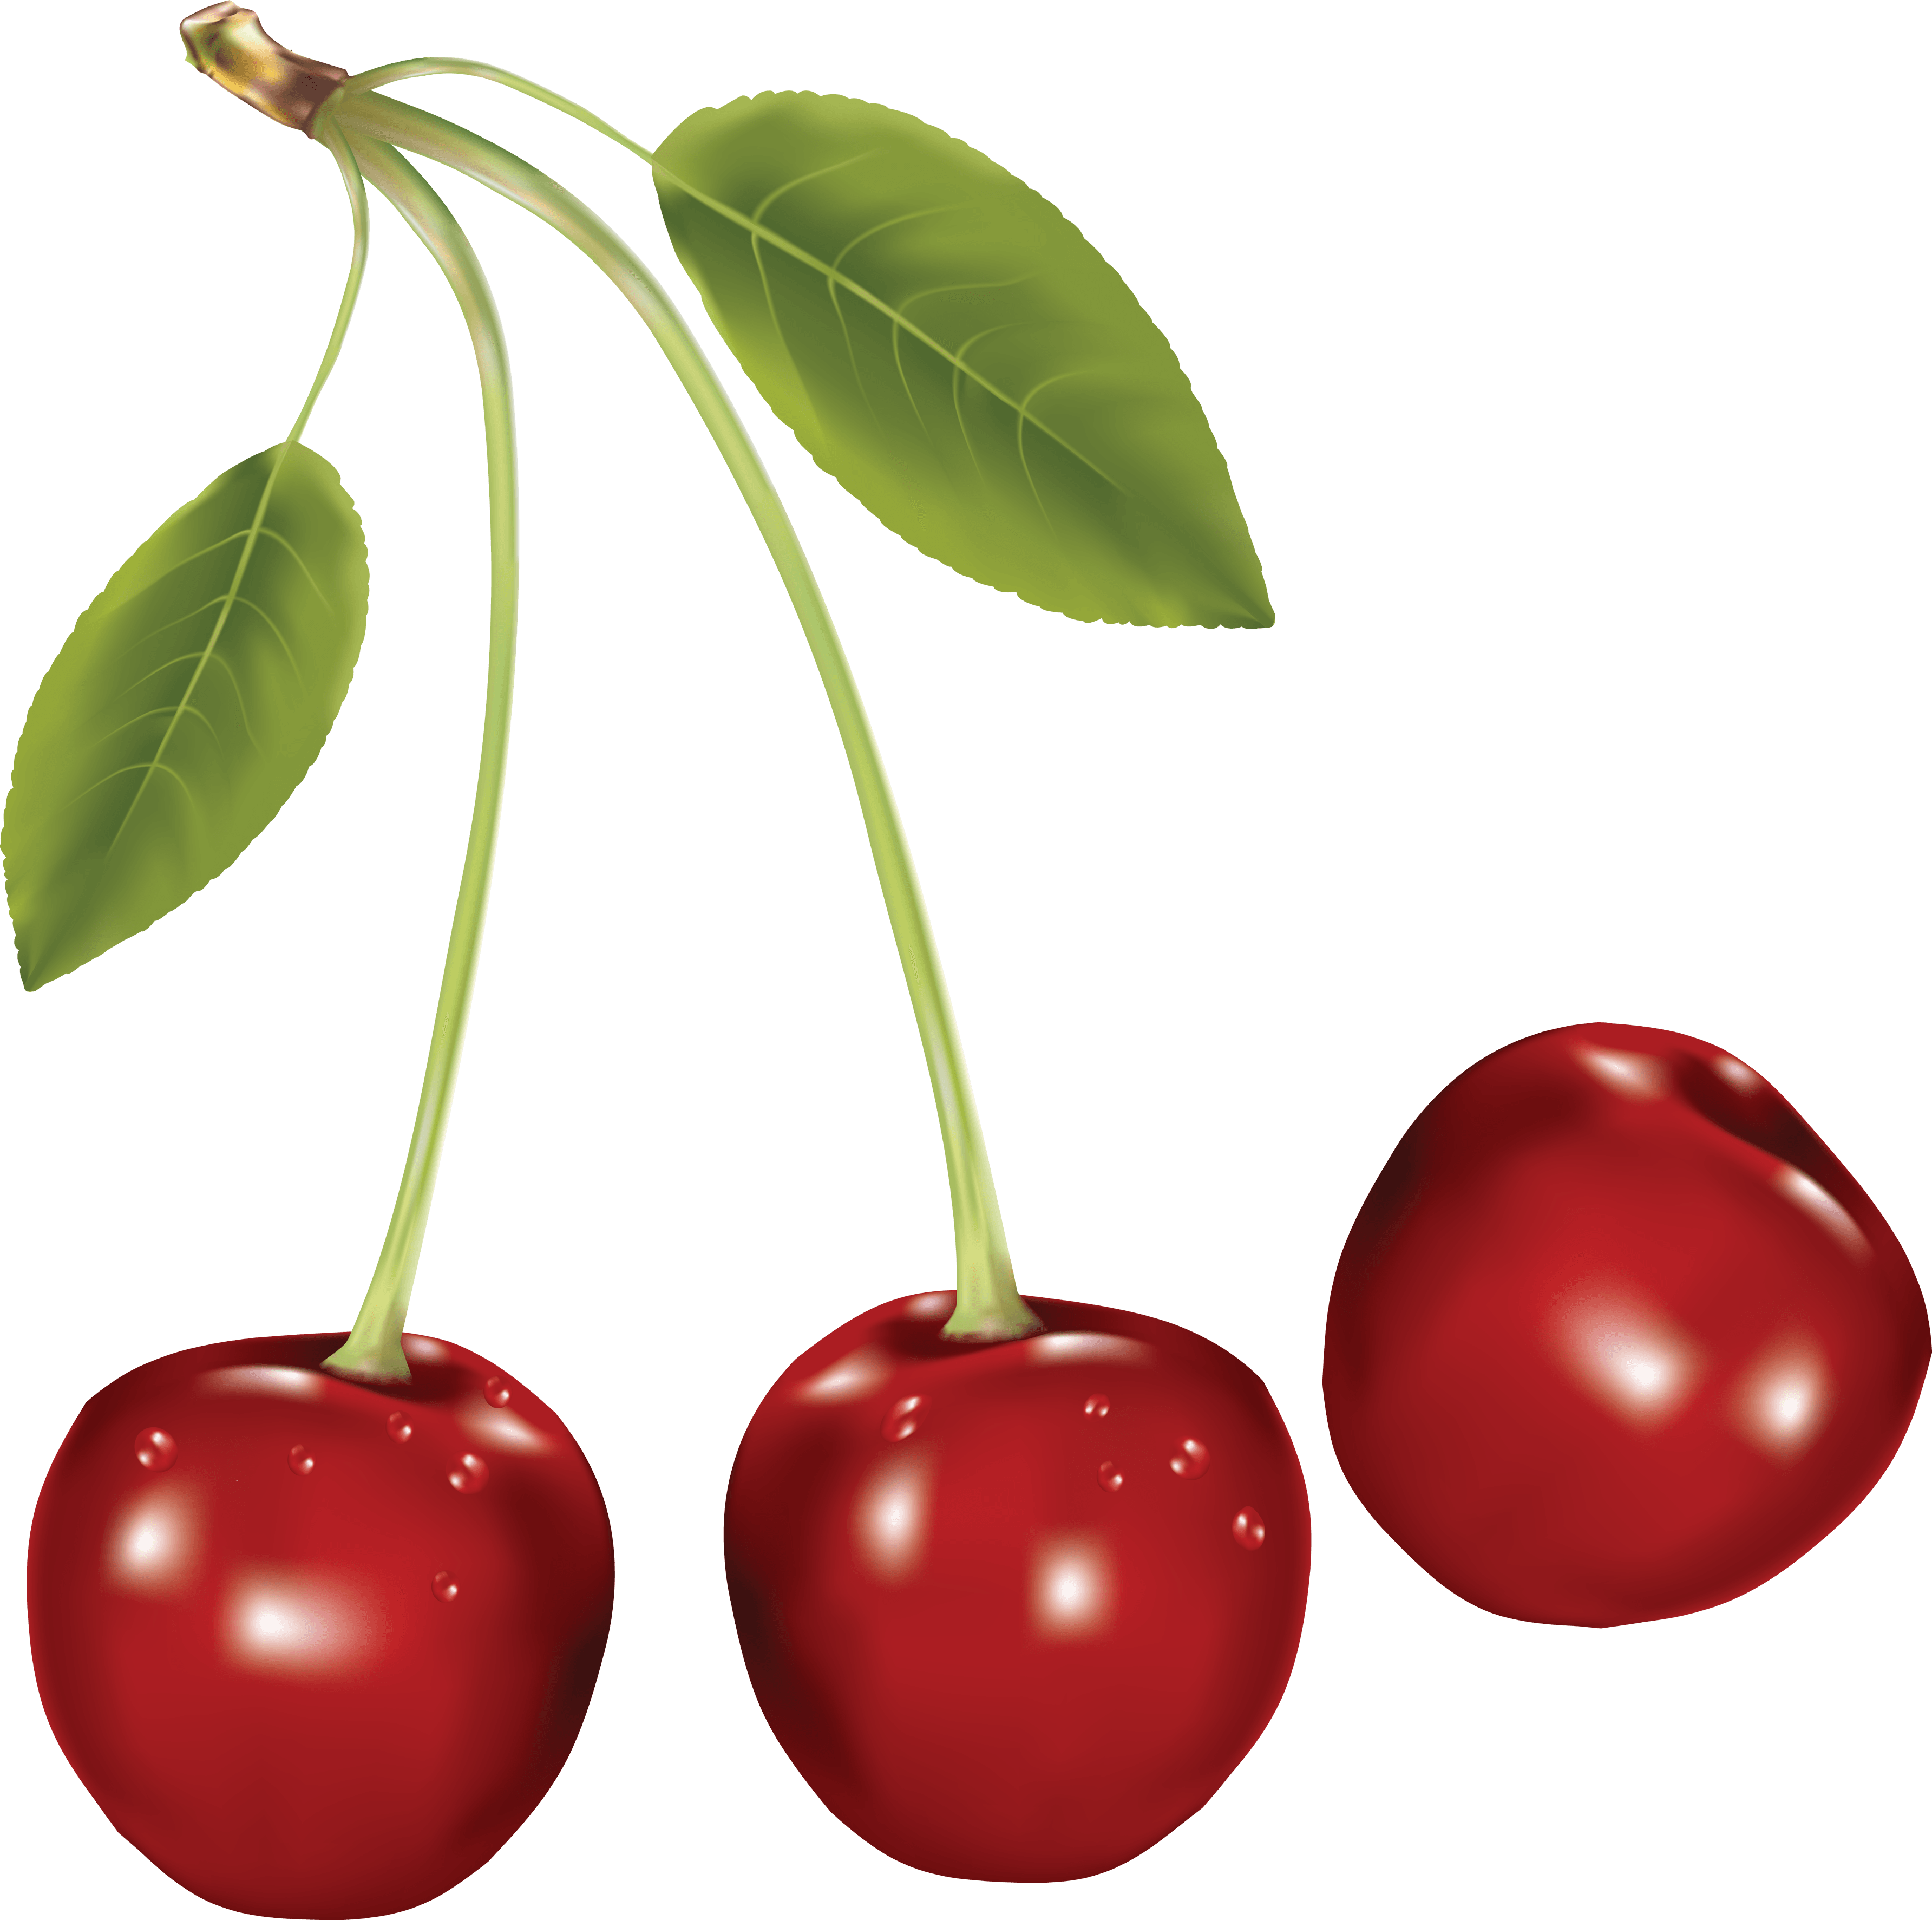 Download Cherries Png Image HQ PNG Image.